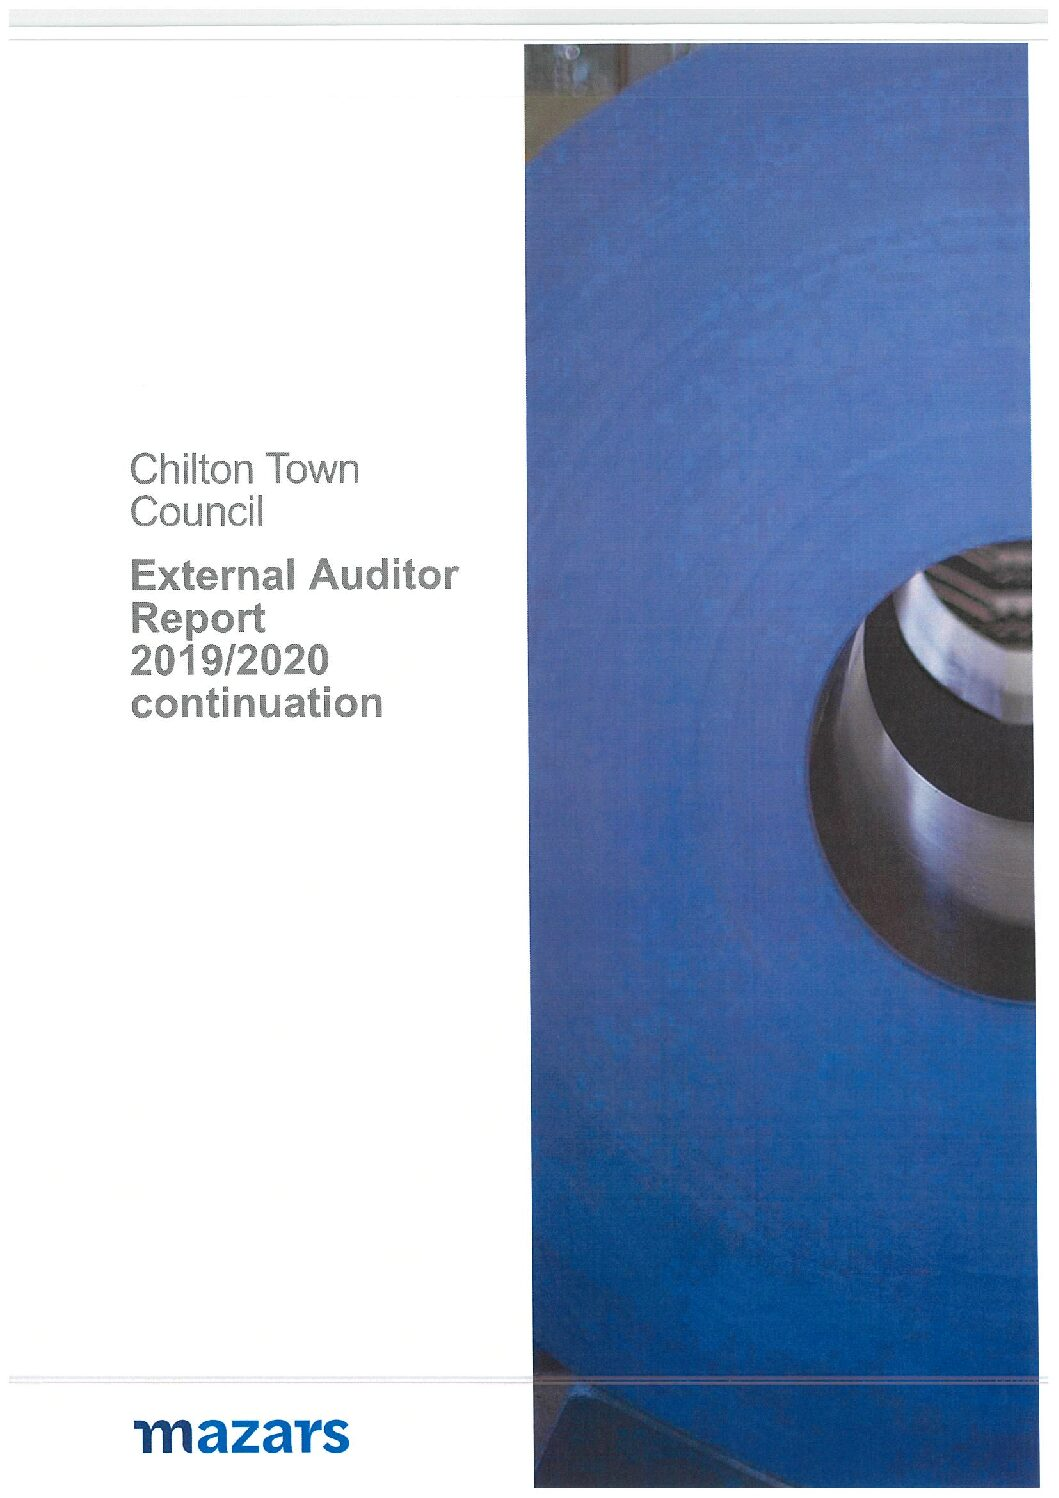 External Auditor Reports on Chilton Town Council accounts for year ending 31st March 2020